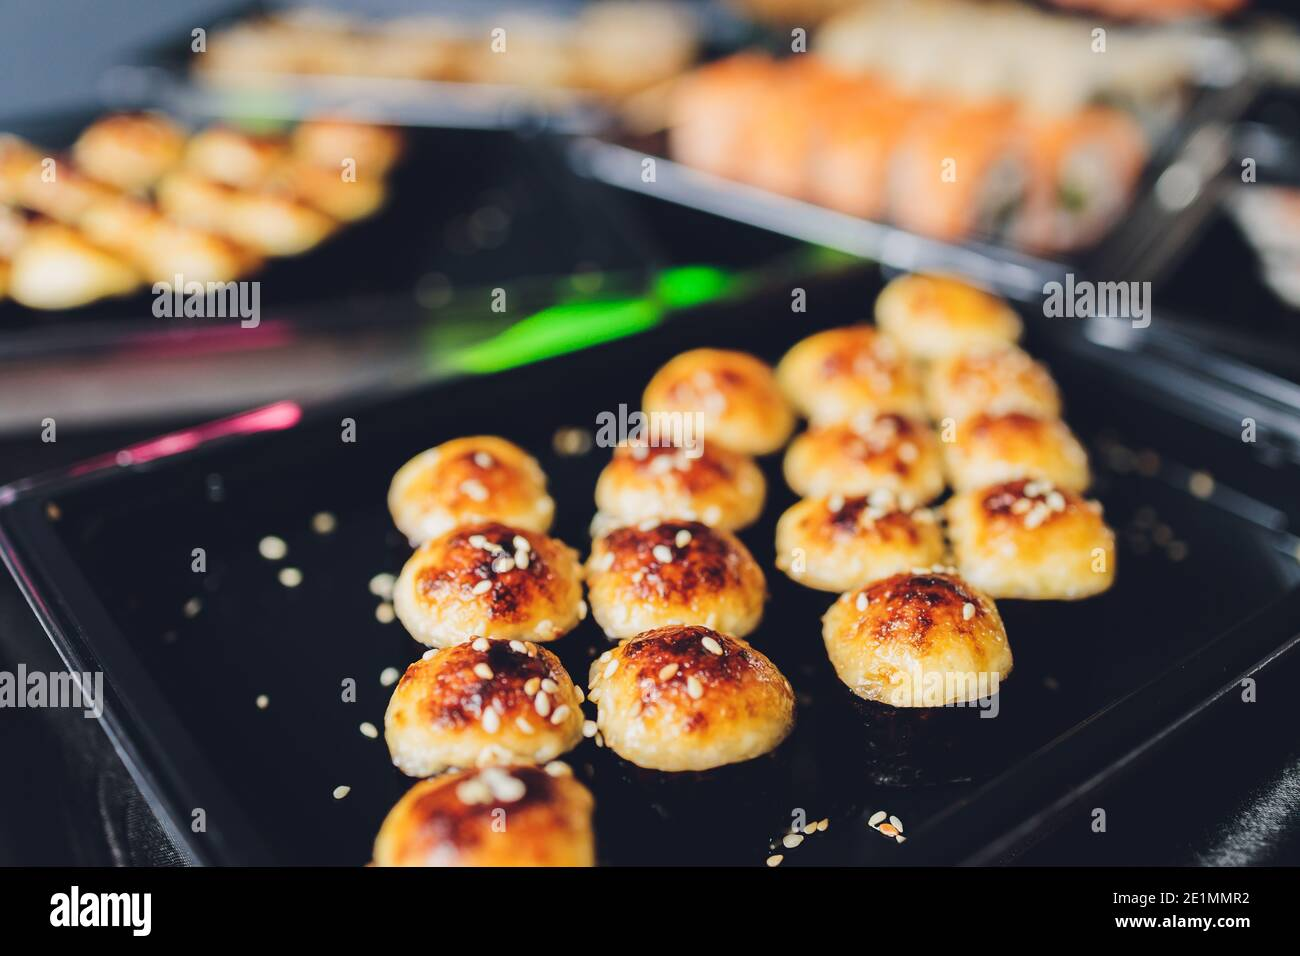 Asian food table with various kind of chinese food, noodles, chicken, rolls, sushi. Served on old wooden table, Asian food set soup, noodles and sushi Stock Photo